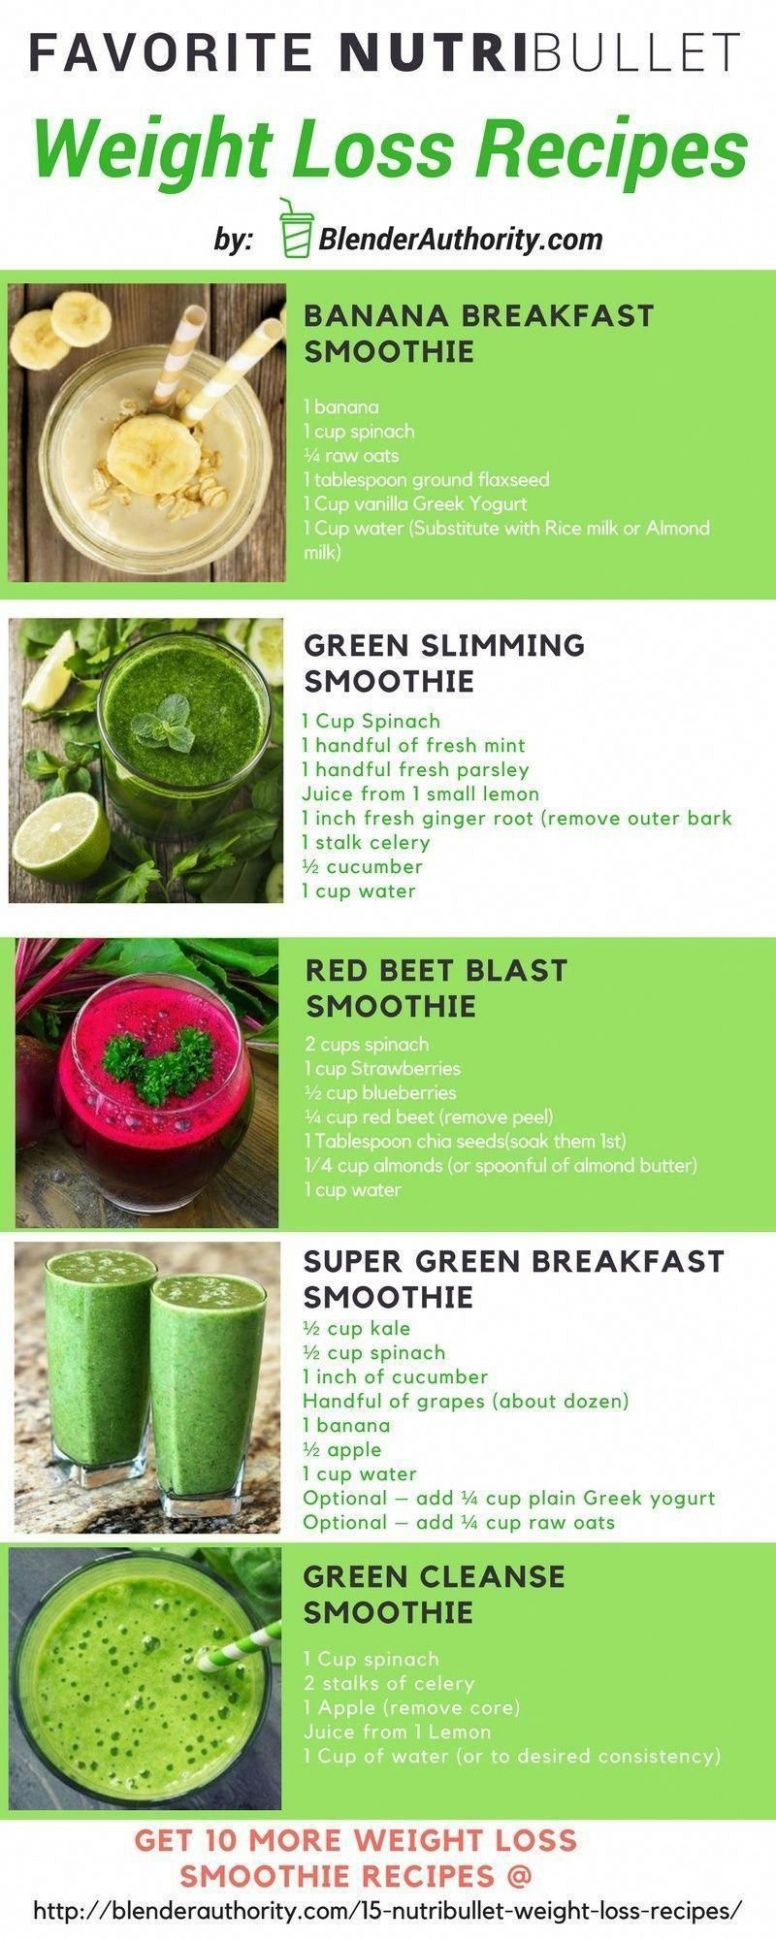 Nutribullet recipes for weight loss smoothies #smoothieweightloss ..